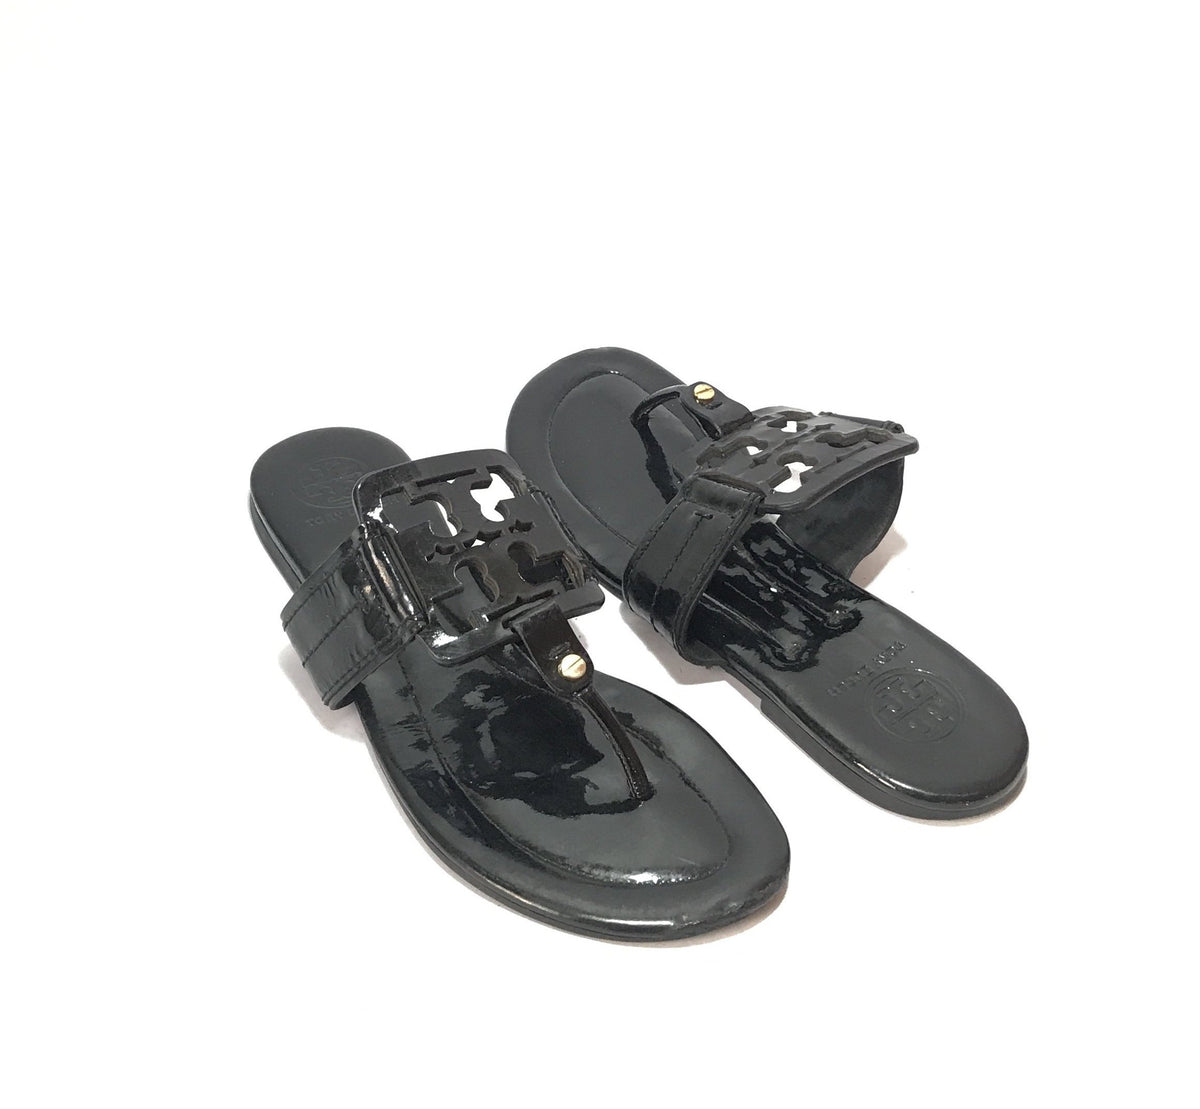 612de89bb Tory Burch Patent Leather Square Miller Thong Sandals